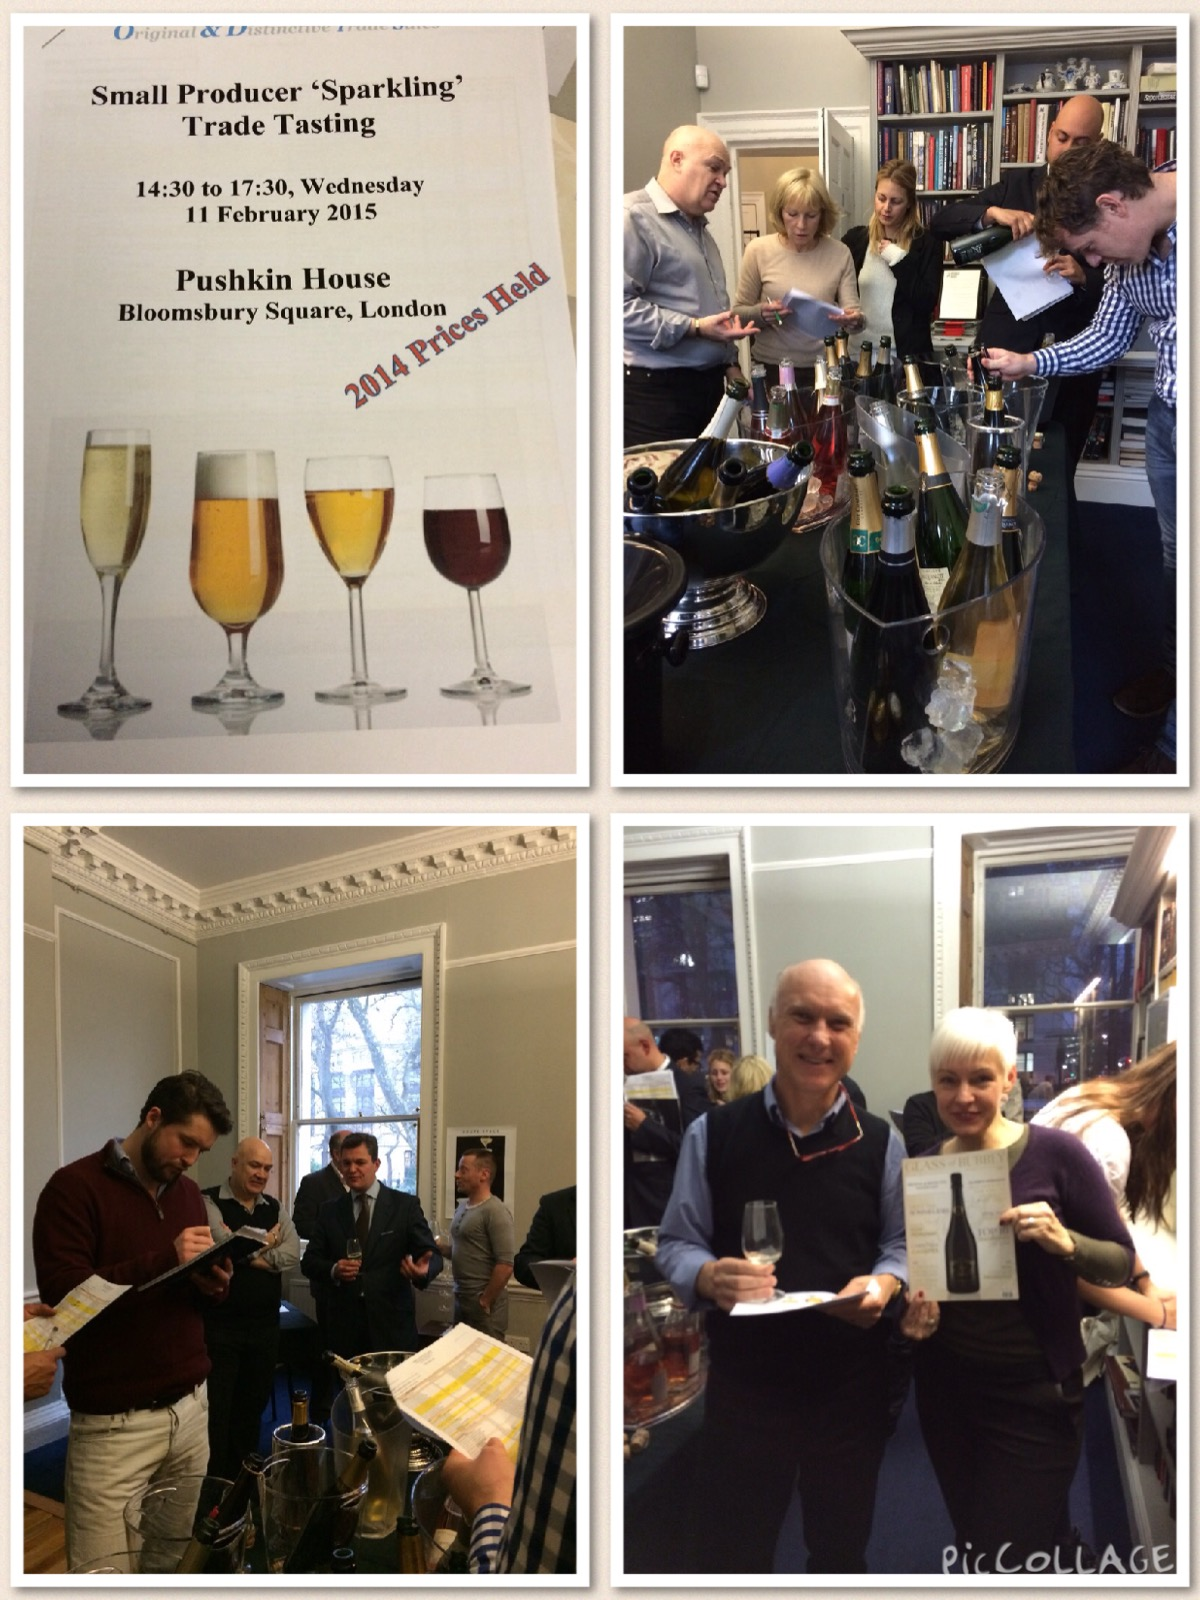 Small Producer Customer Tasting - Spring 2015